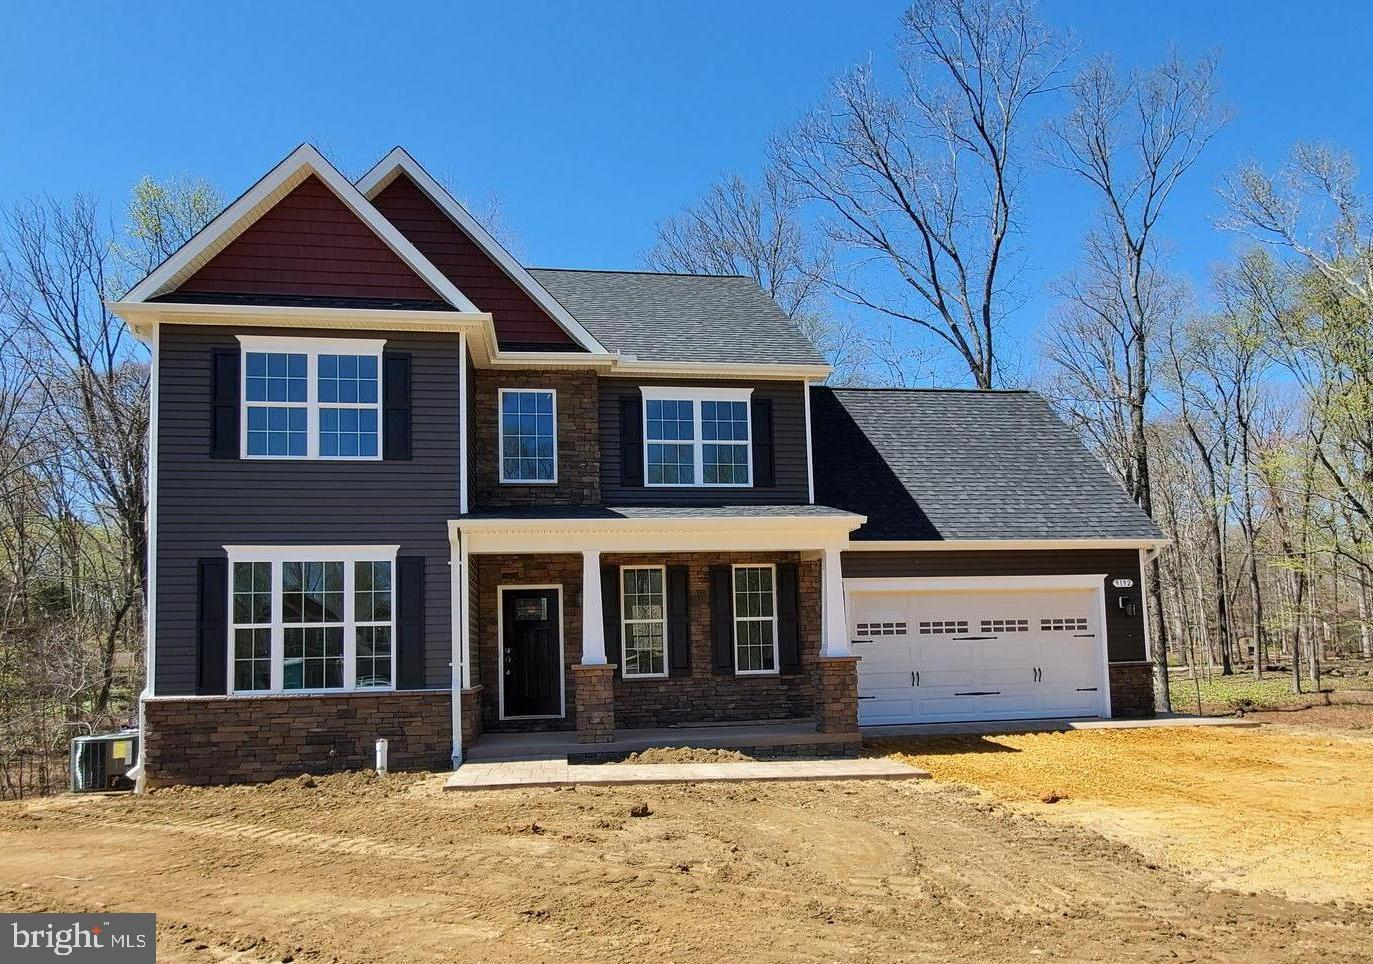 APRIL DELIVERY!! The Duke features 4 bedrooms, 3.5 baths and this particular model includes a Trex c